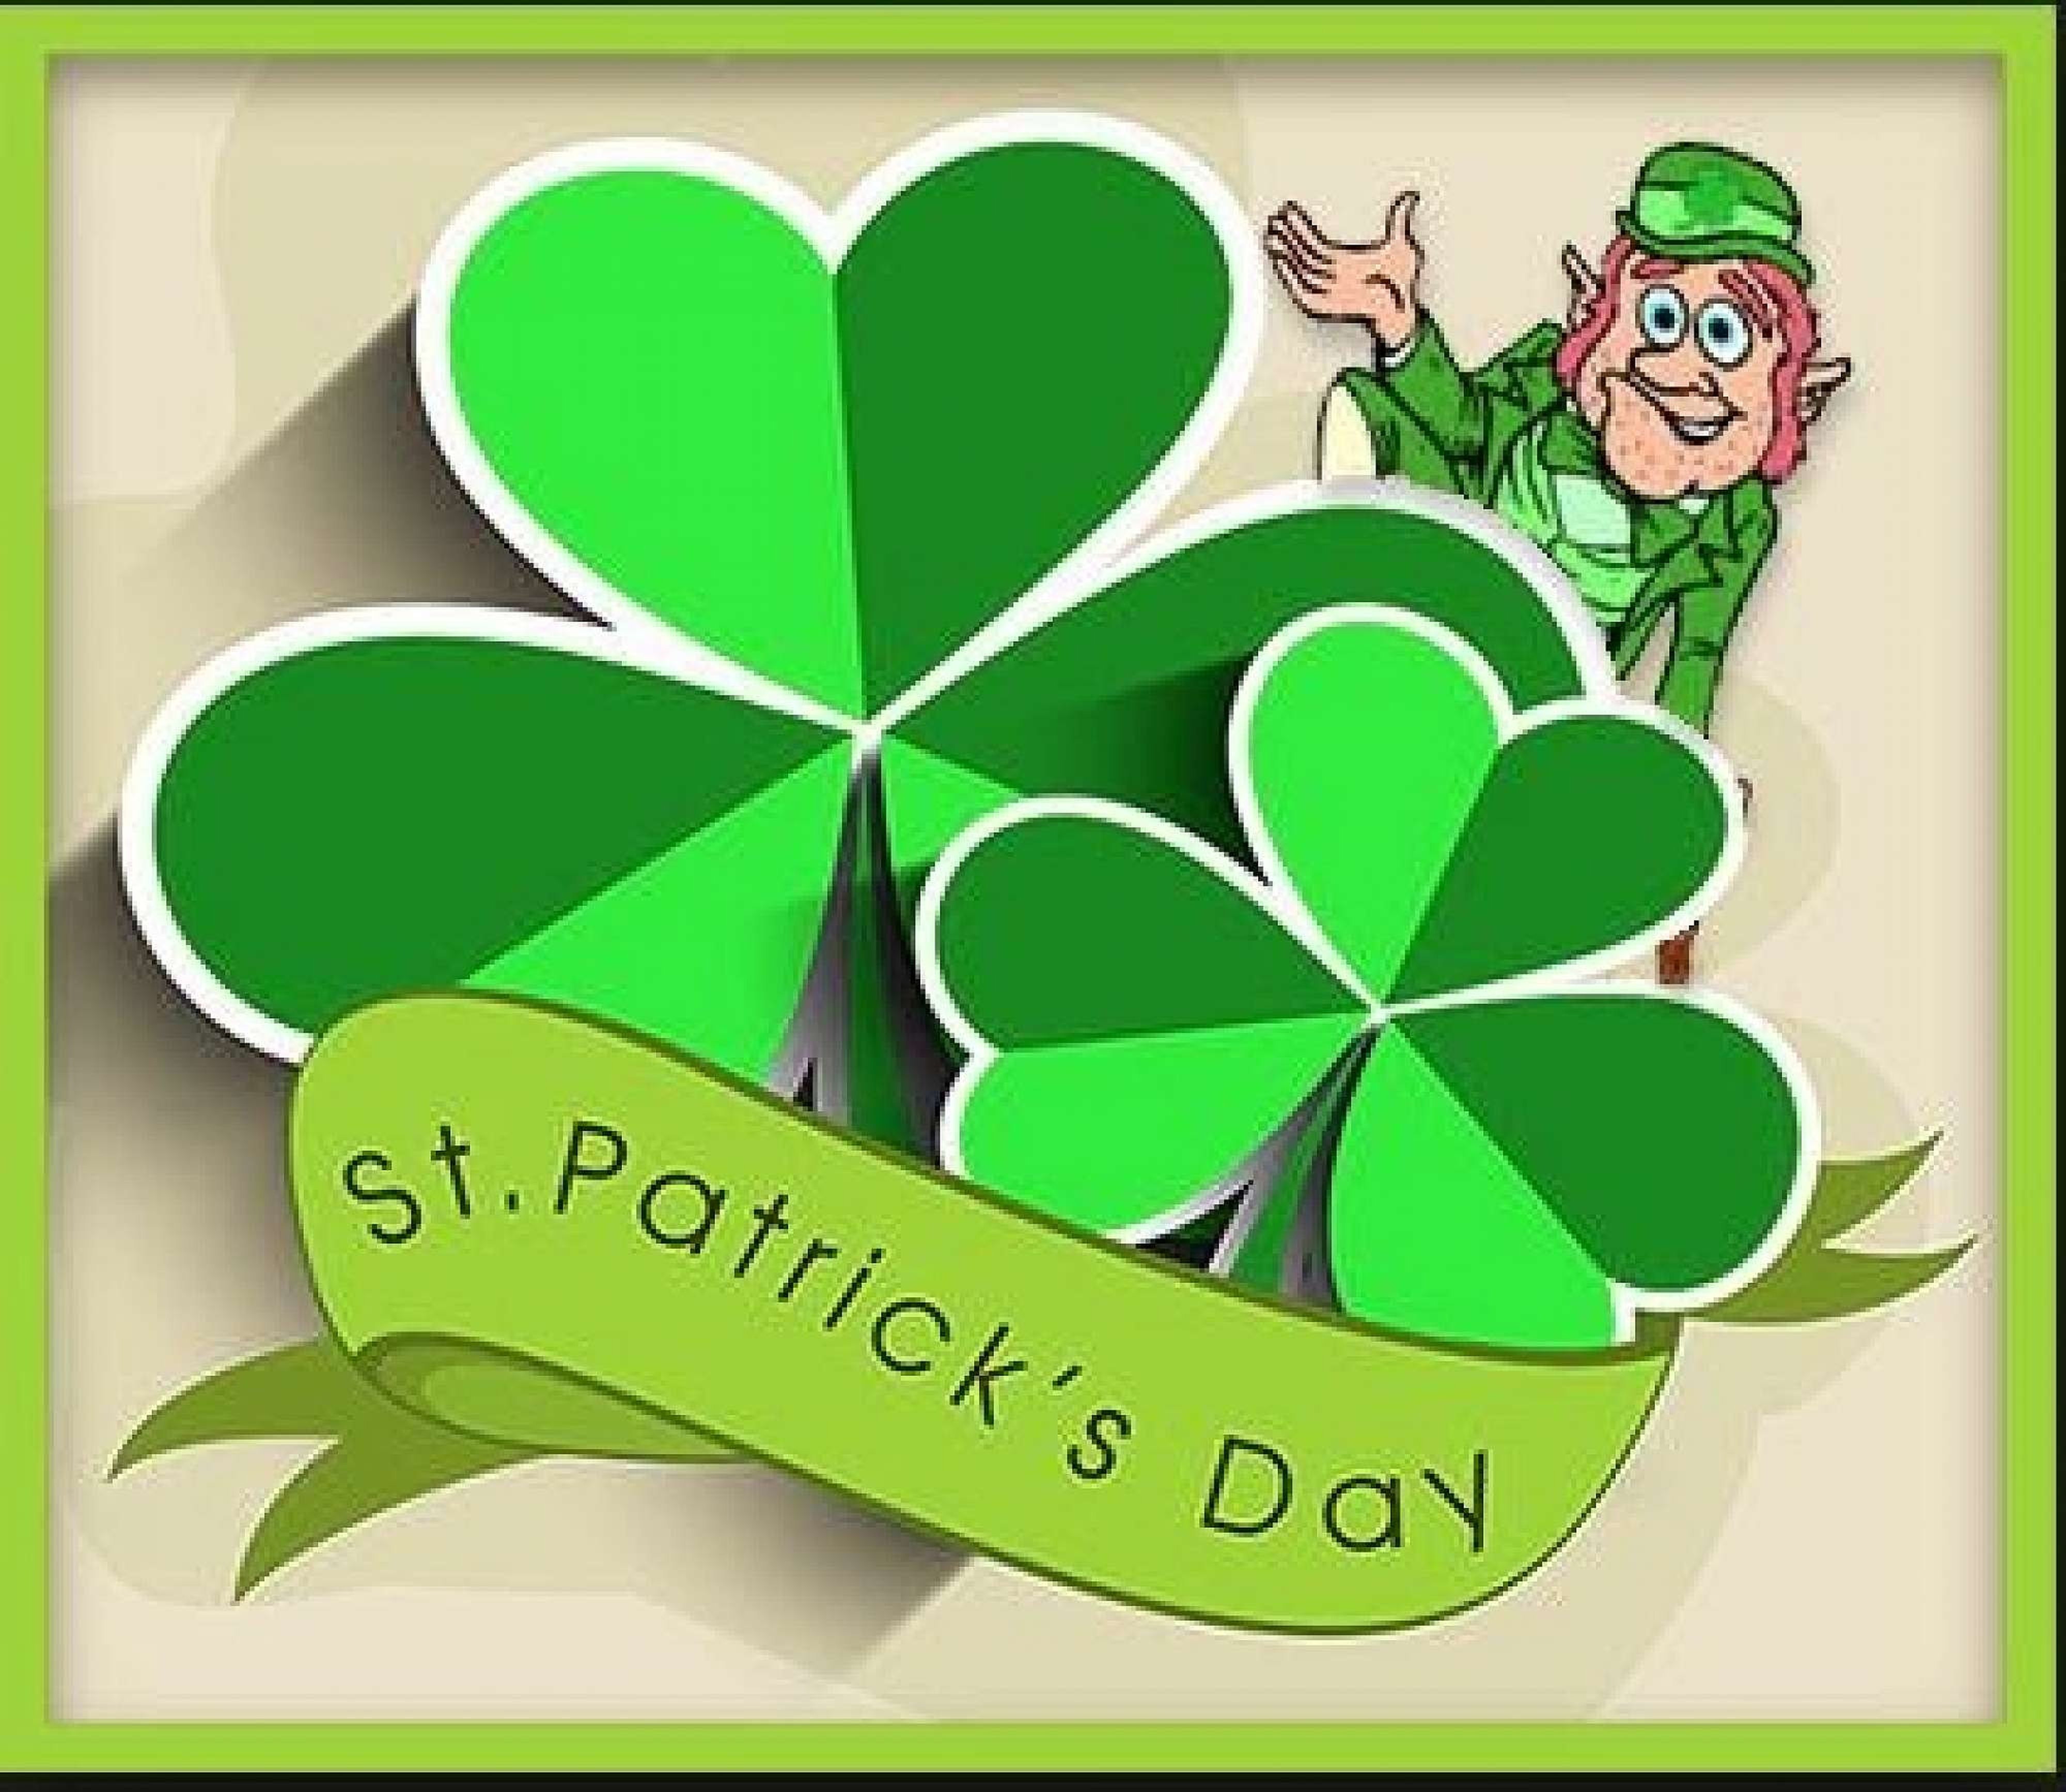 St Patricks Day Online Slot Demo Game by Gamescale Software